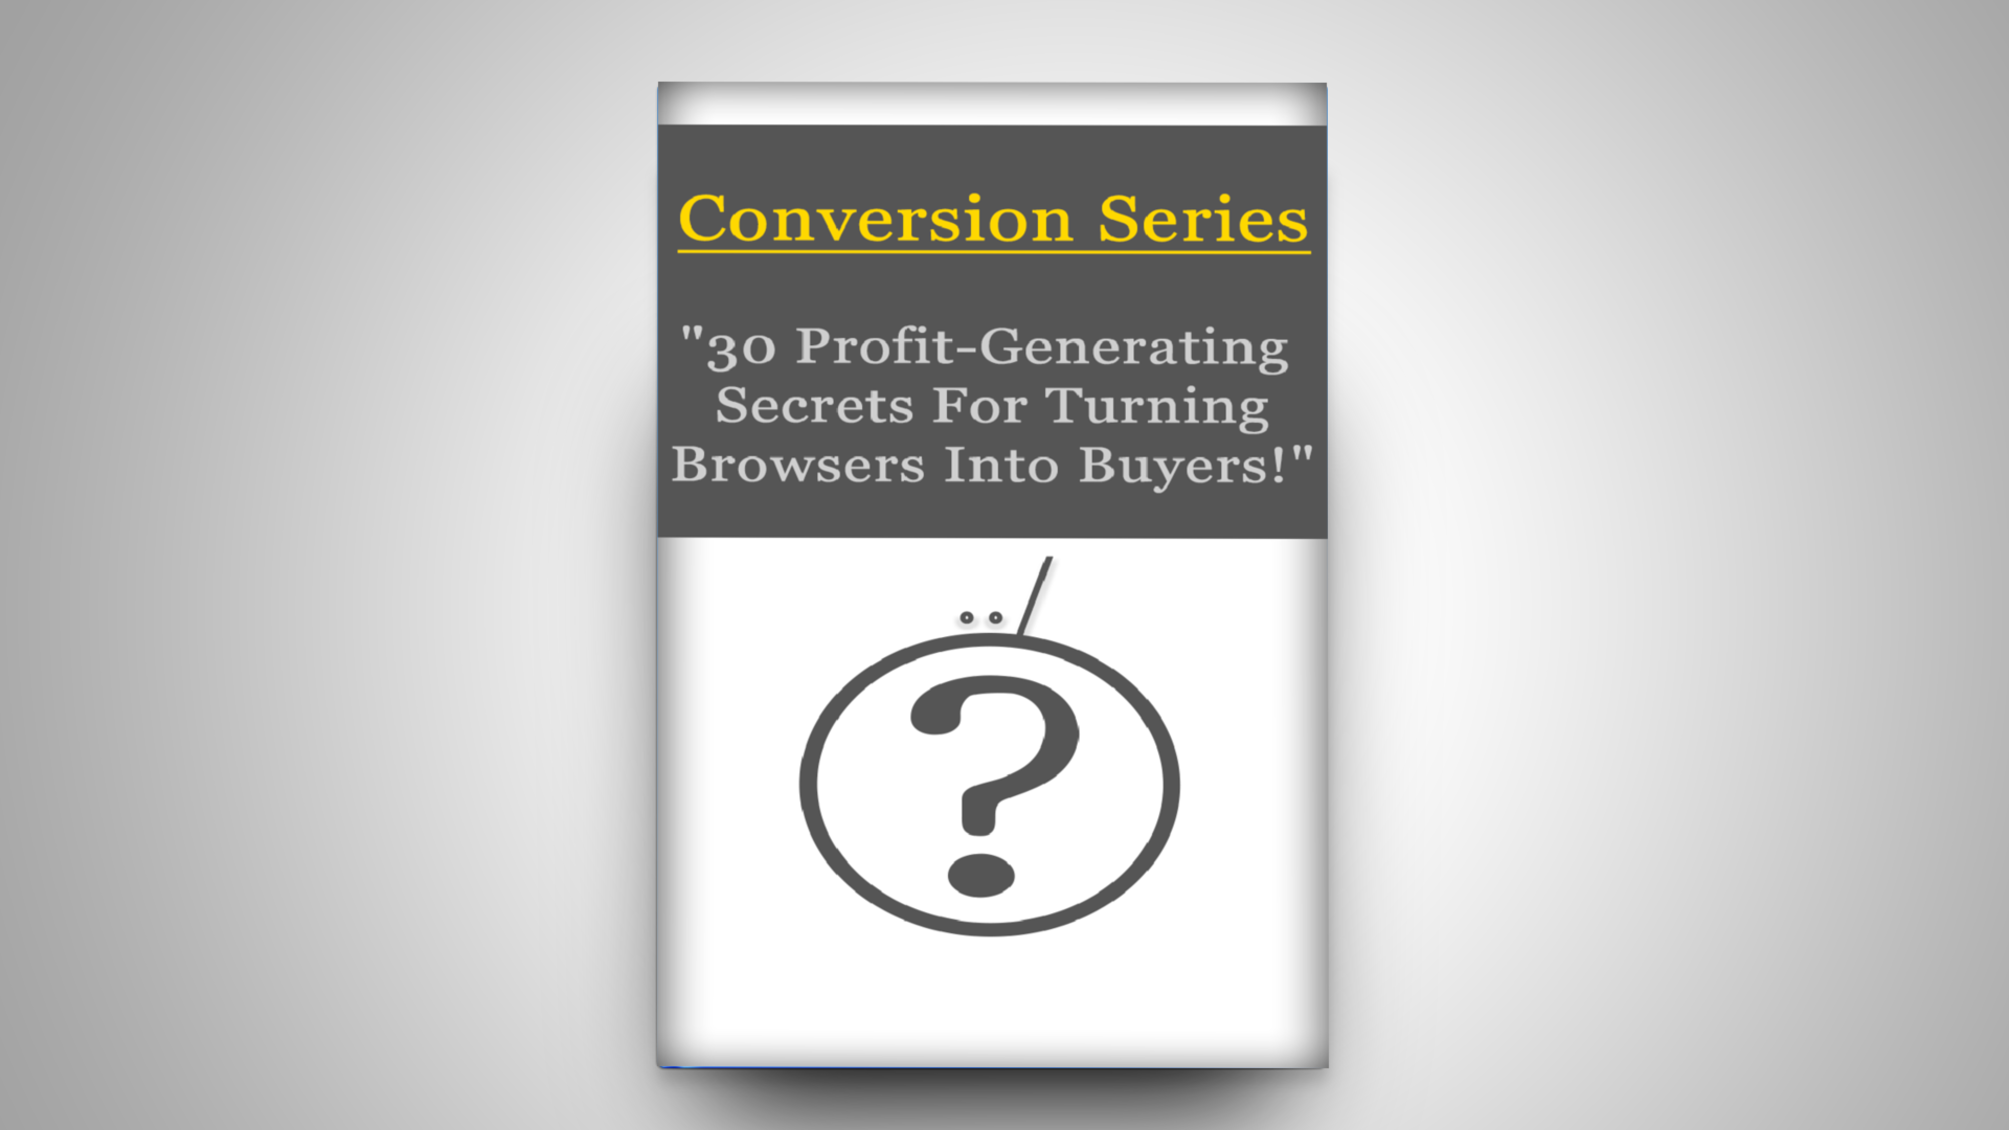 Conversion Series 30 Tips-x